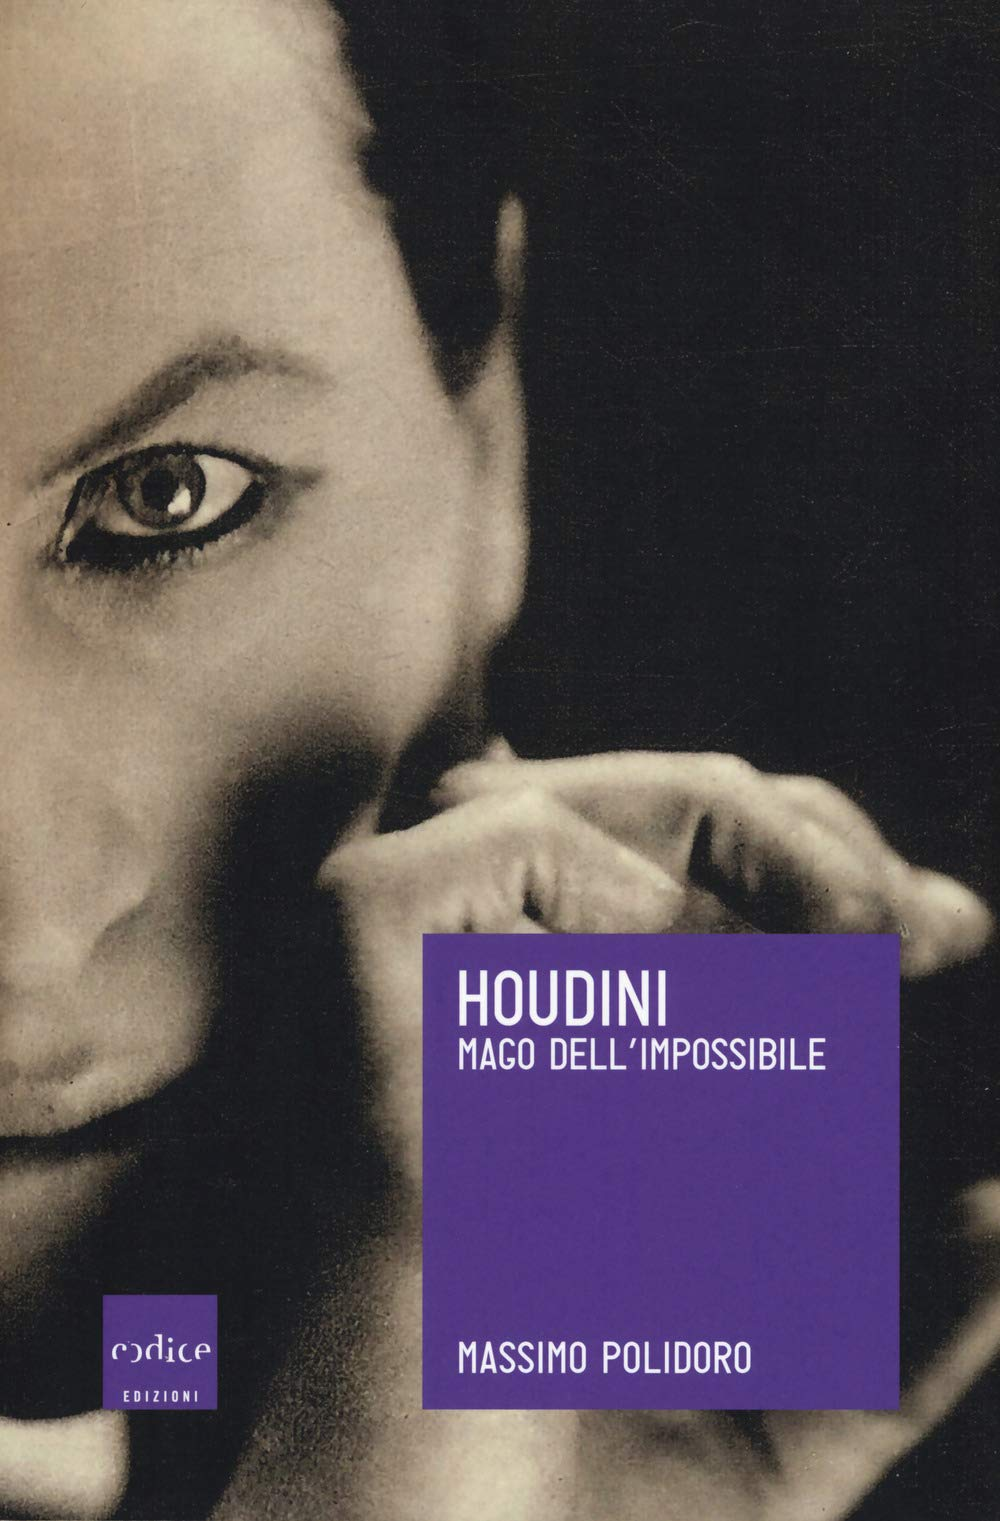 928b673dfe4b New Italian Houdini biography by Massimo Polidoro